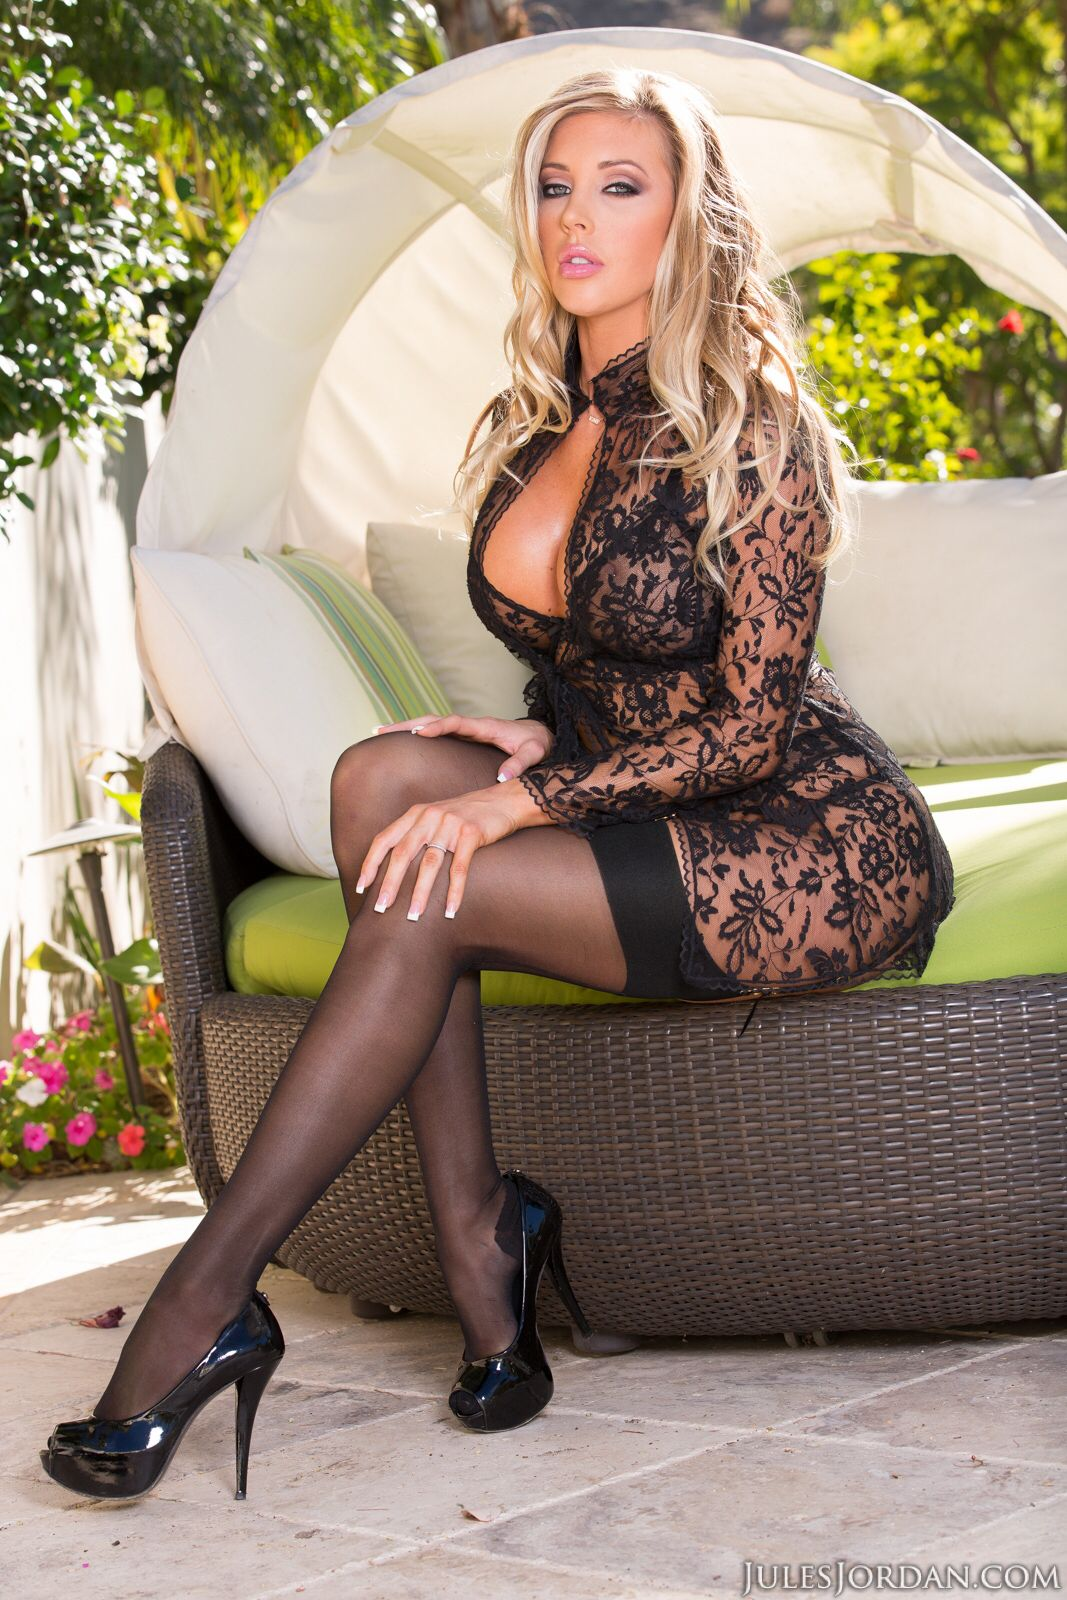 samantha saint samantha saint pinterest saints lingerie 2